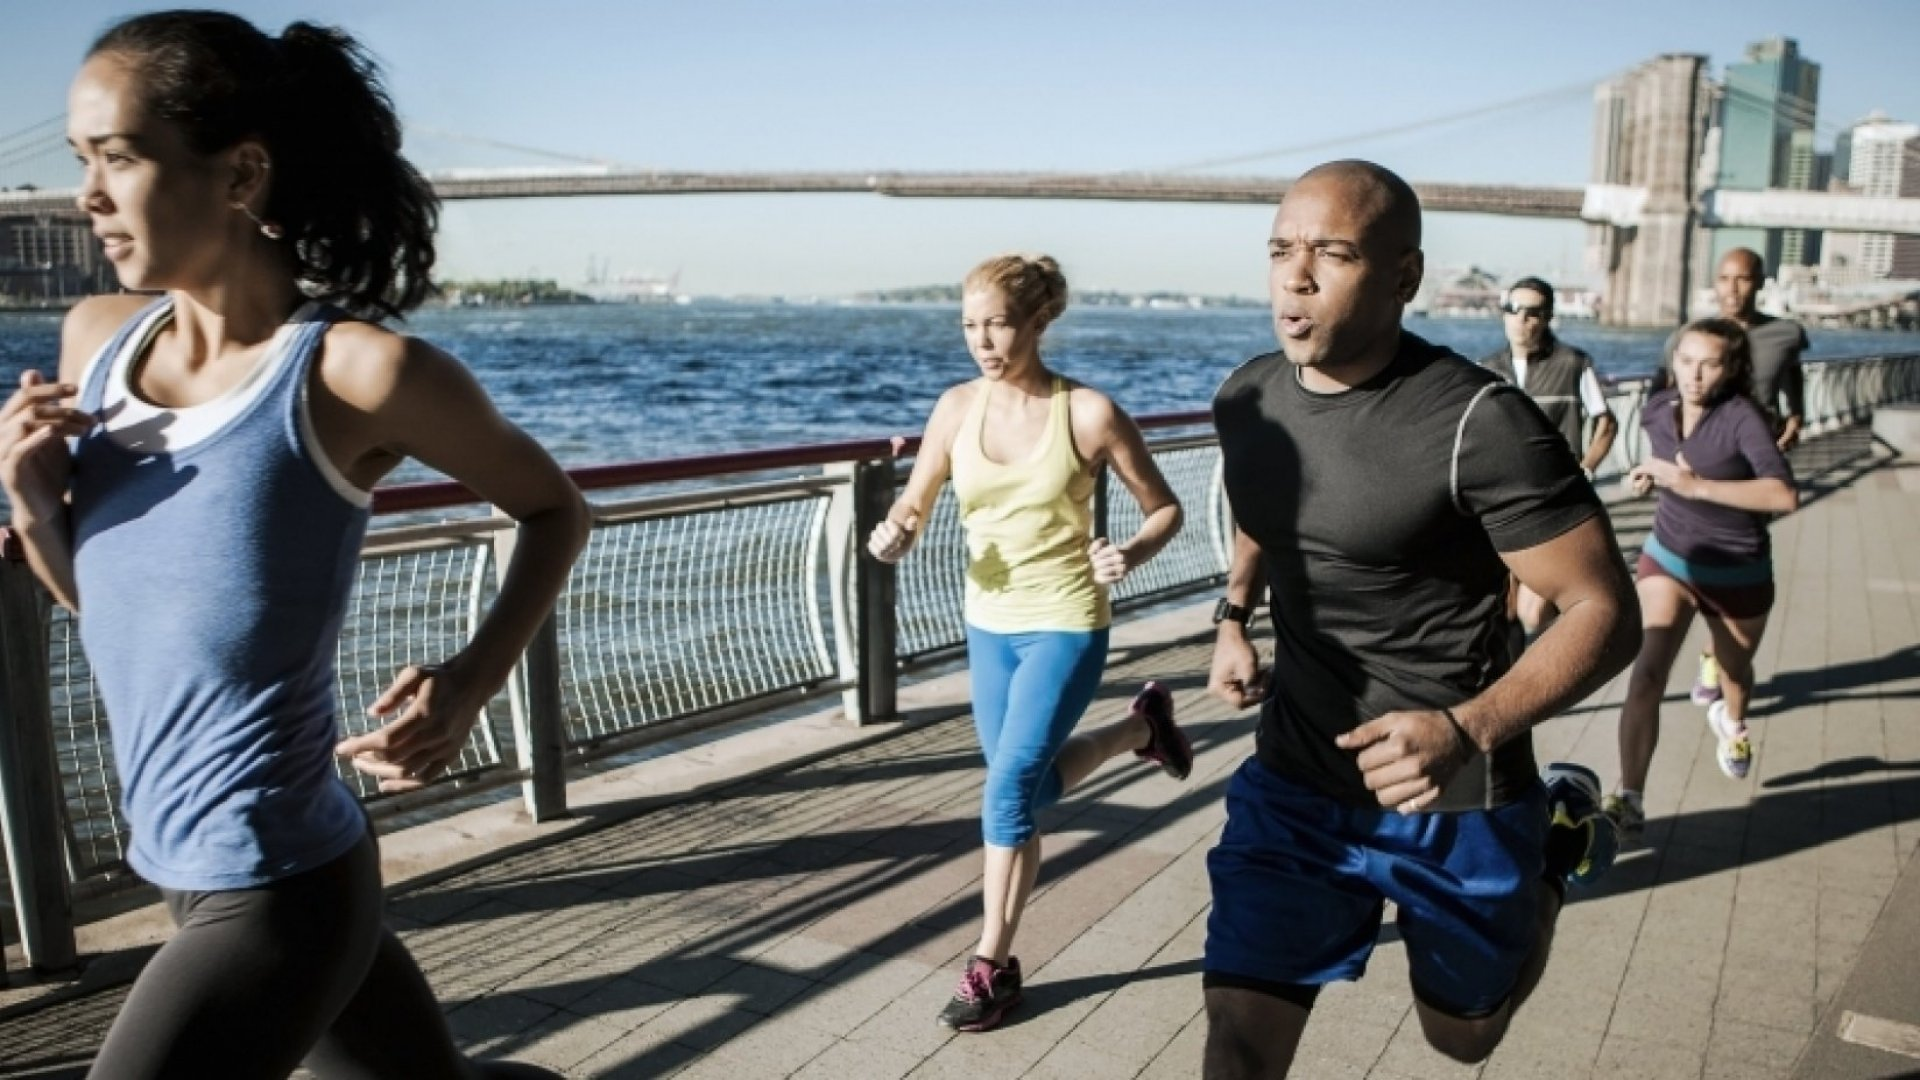 5 Questions to Consider Before Creating an Employee Wellness Program